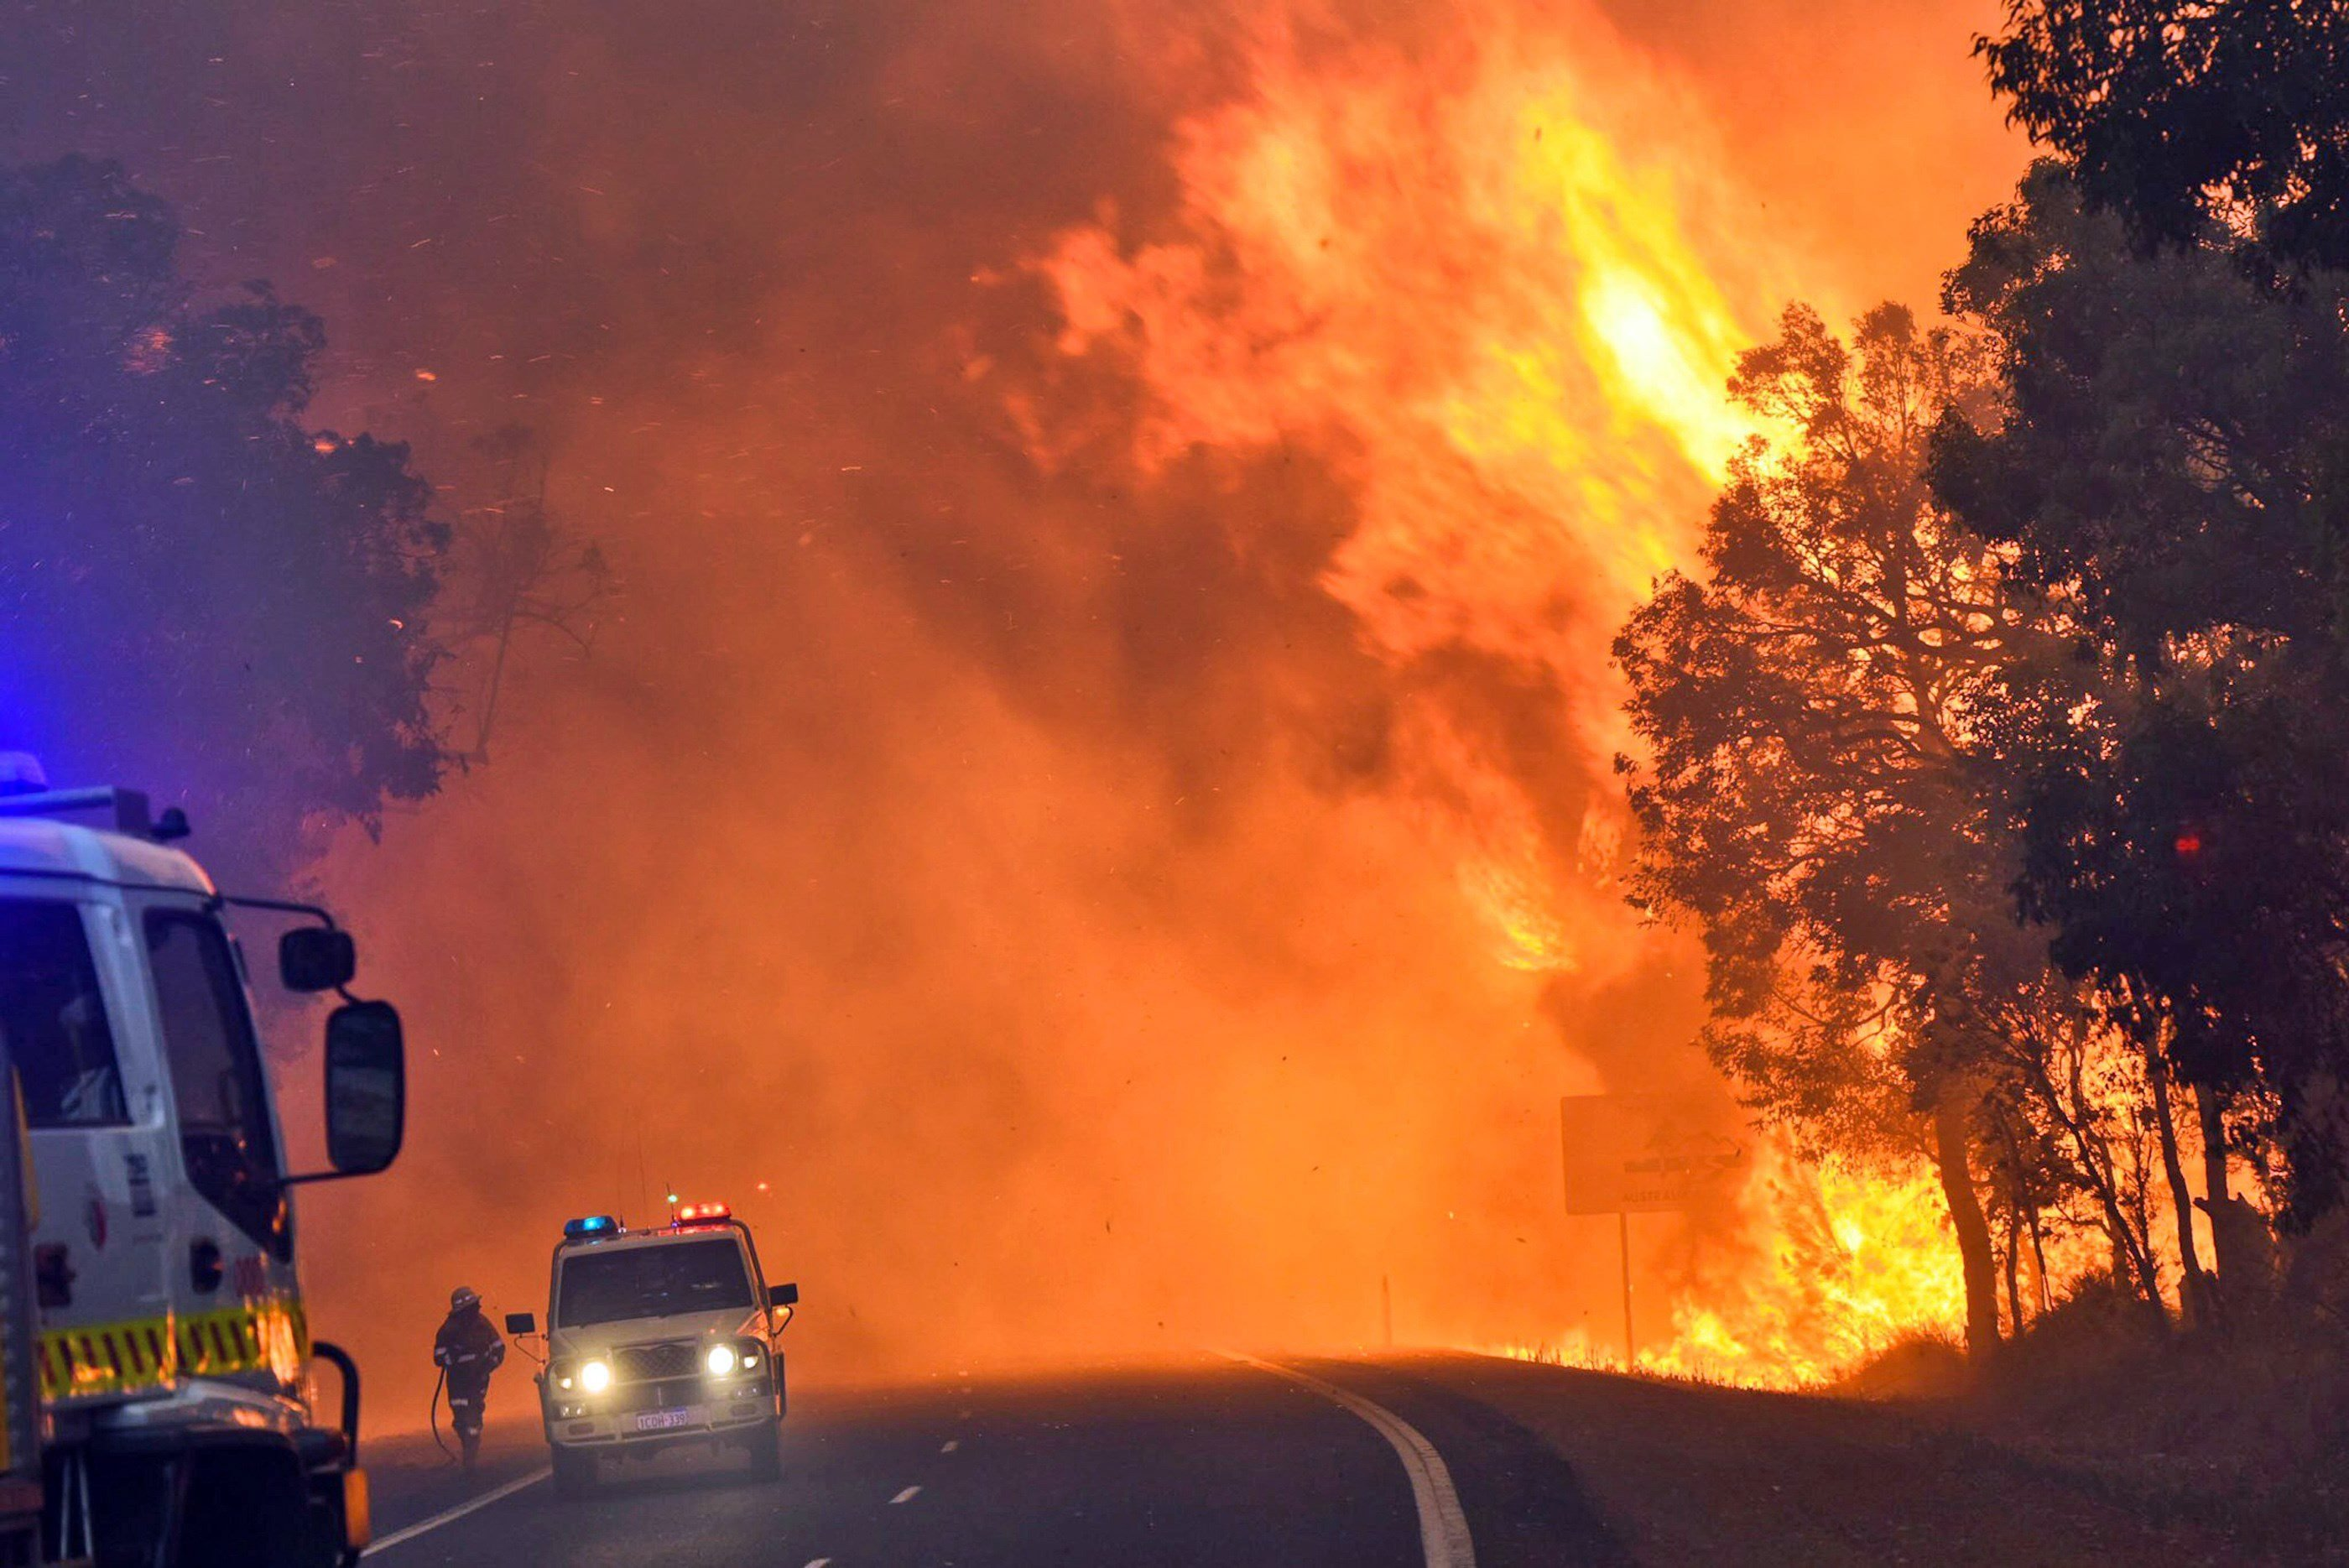 A handout photo taken on January 7, 2016 and released on January 8 by the Department of Fire and Emergency Services shows firefighters battling a fire near Yarloop in Western Australia. (AFP Photo / Department of fire and emergency services)